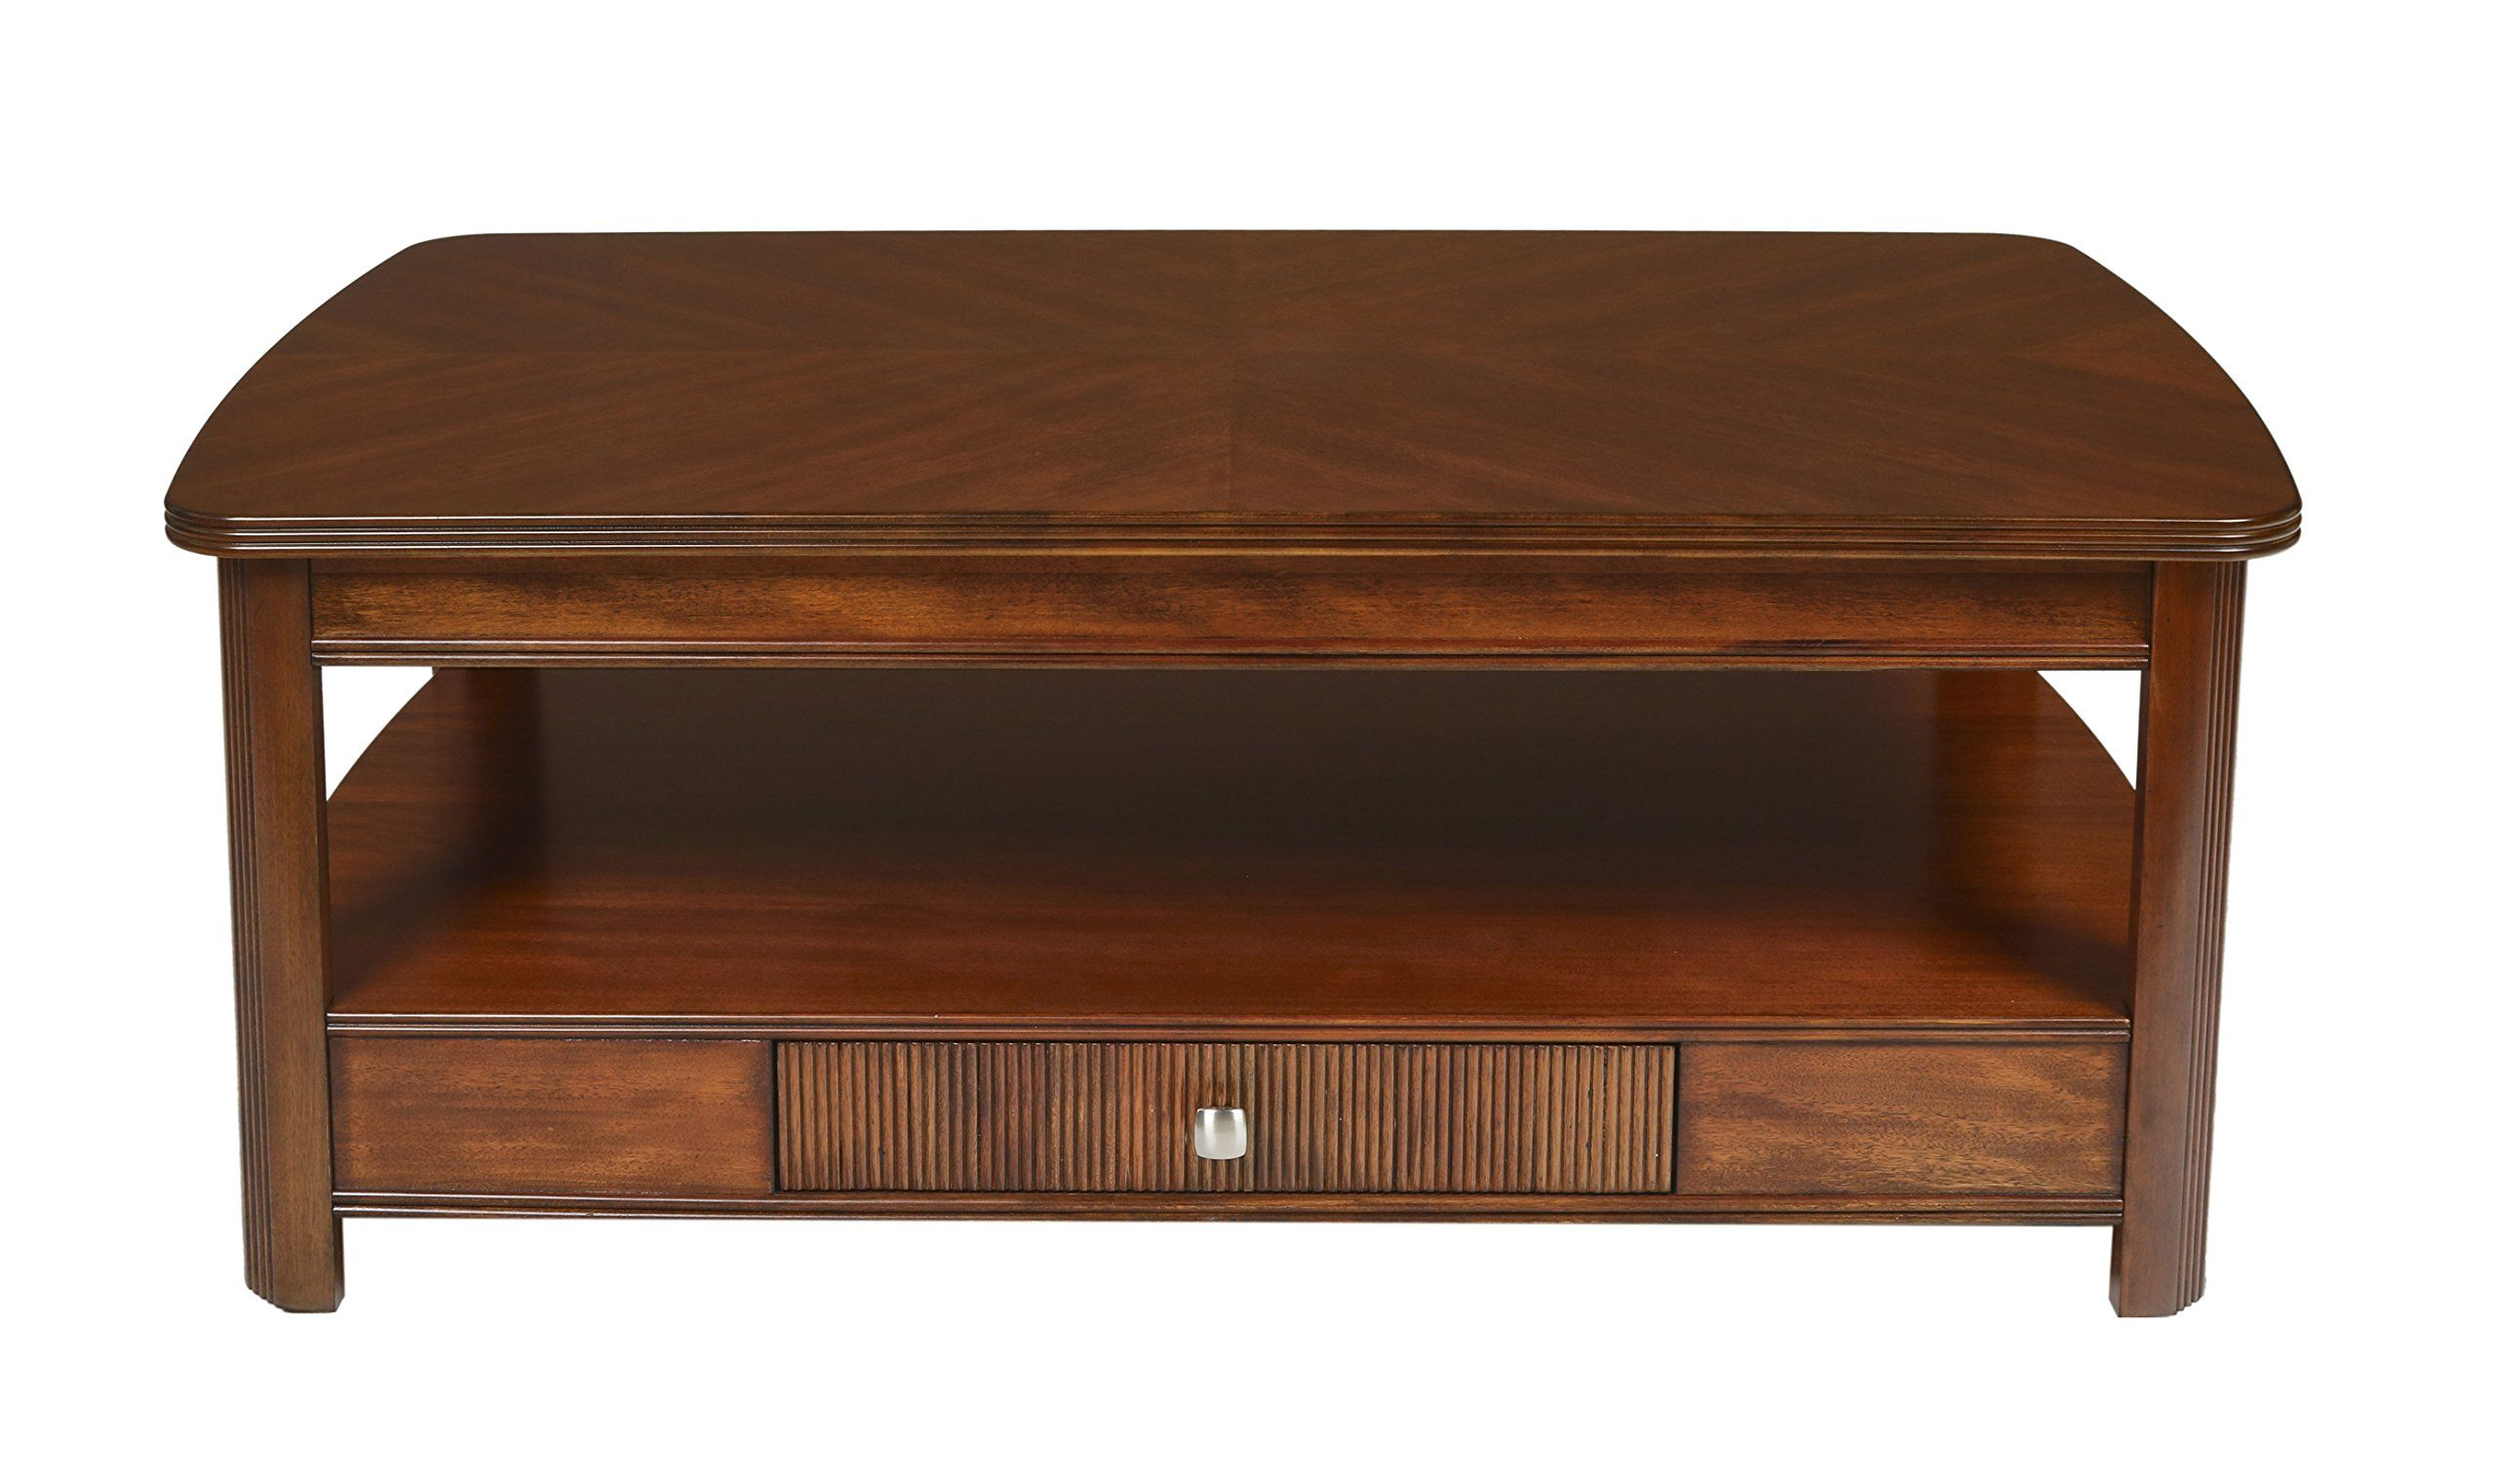 New Classic Leighla Lift Top Cocktail Table African Chestnut For More Information Visit Image Link This Is A Lift Top Coffee Table Cocktail Tables Table [ 1522 x 2560 Pixel ]